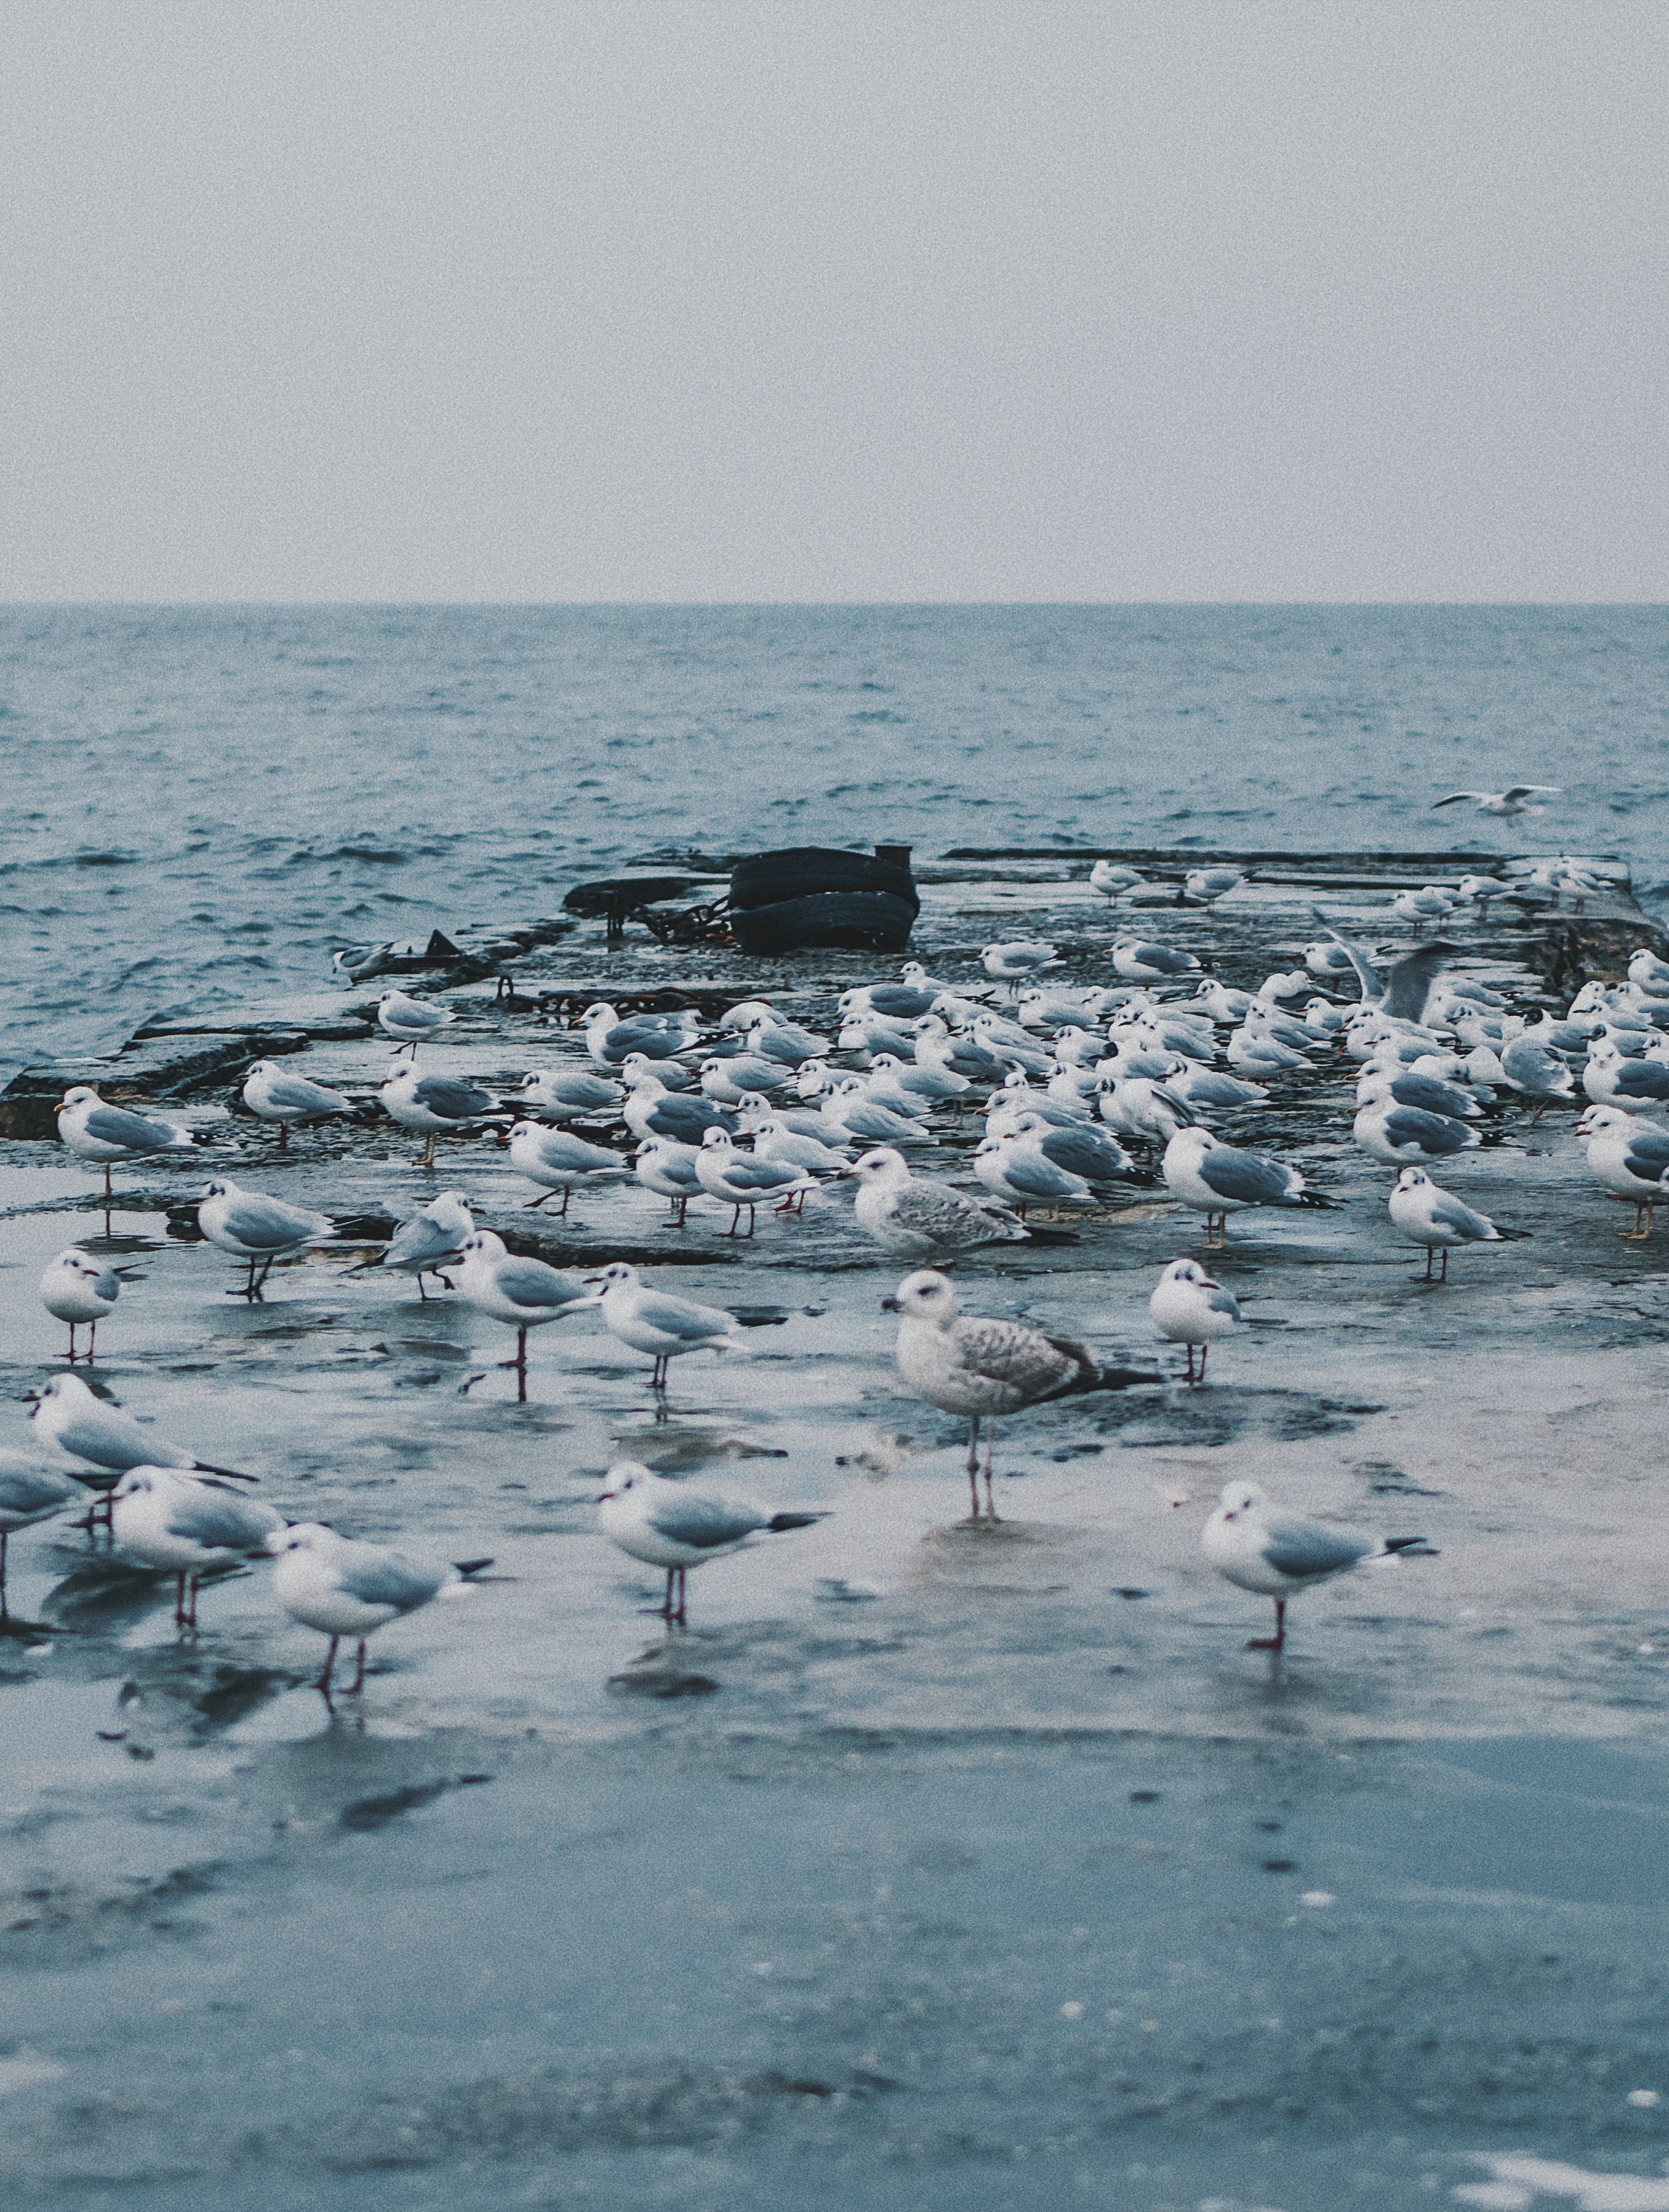 seashore with birds